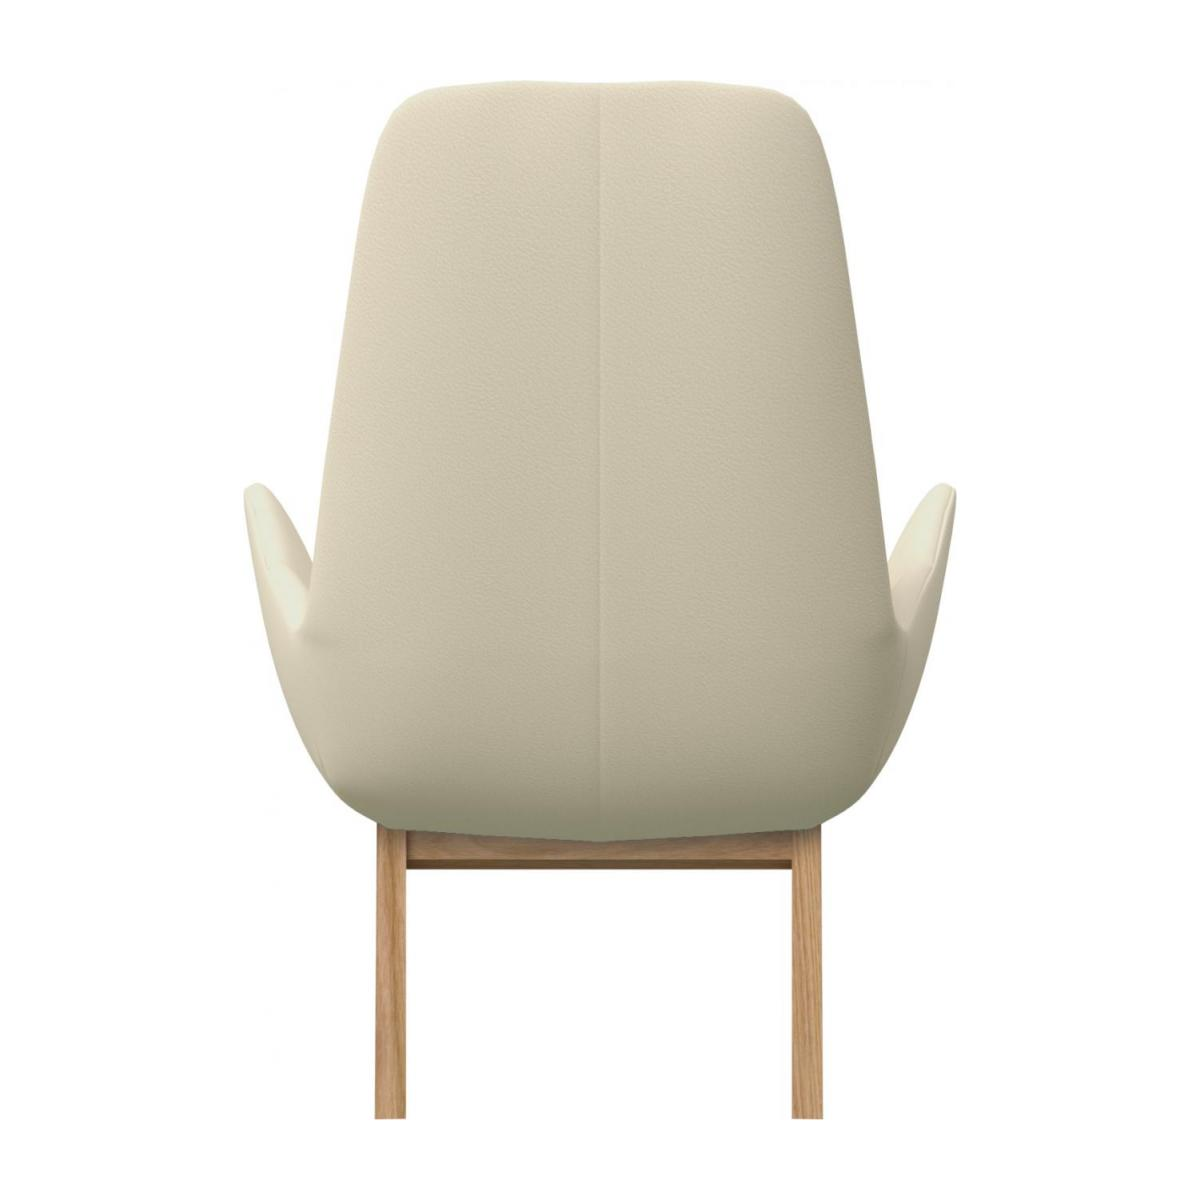 Armchair in Savoy semi-aniline leather, off white with oak legs n°3